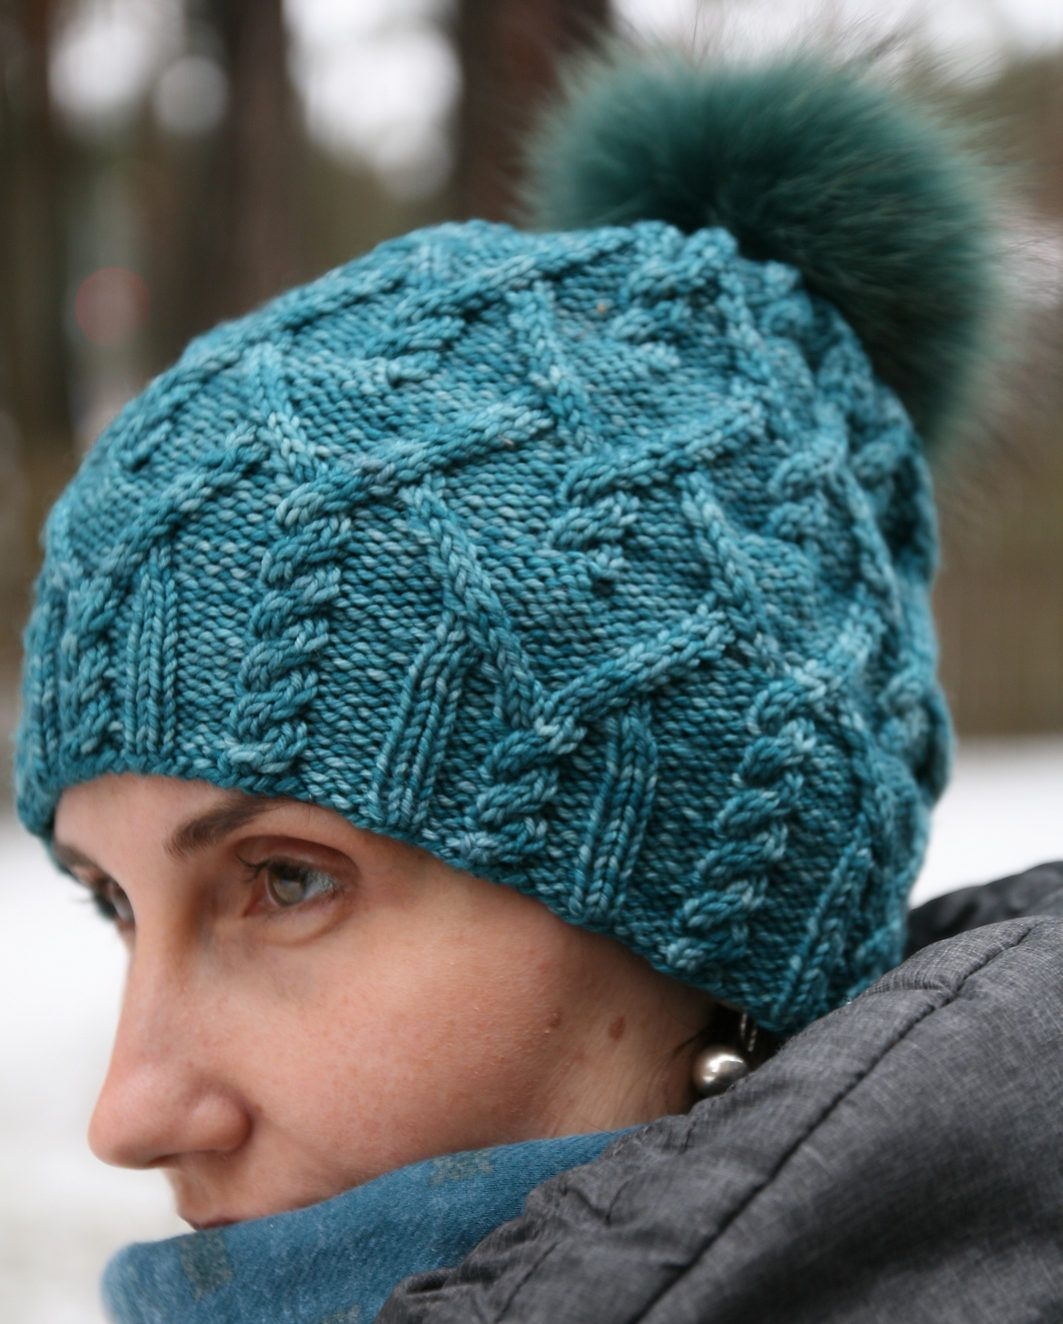 f0bfc104e0f Free Knitting Pattern for Agathis Hat - Versatile cable hat by Agata  Smektala can be knit slouchy or beanie style